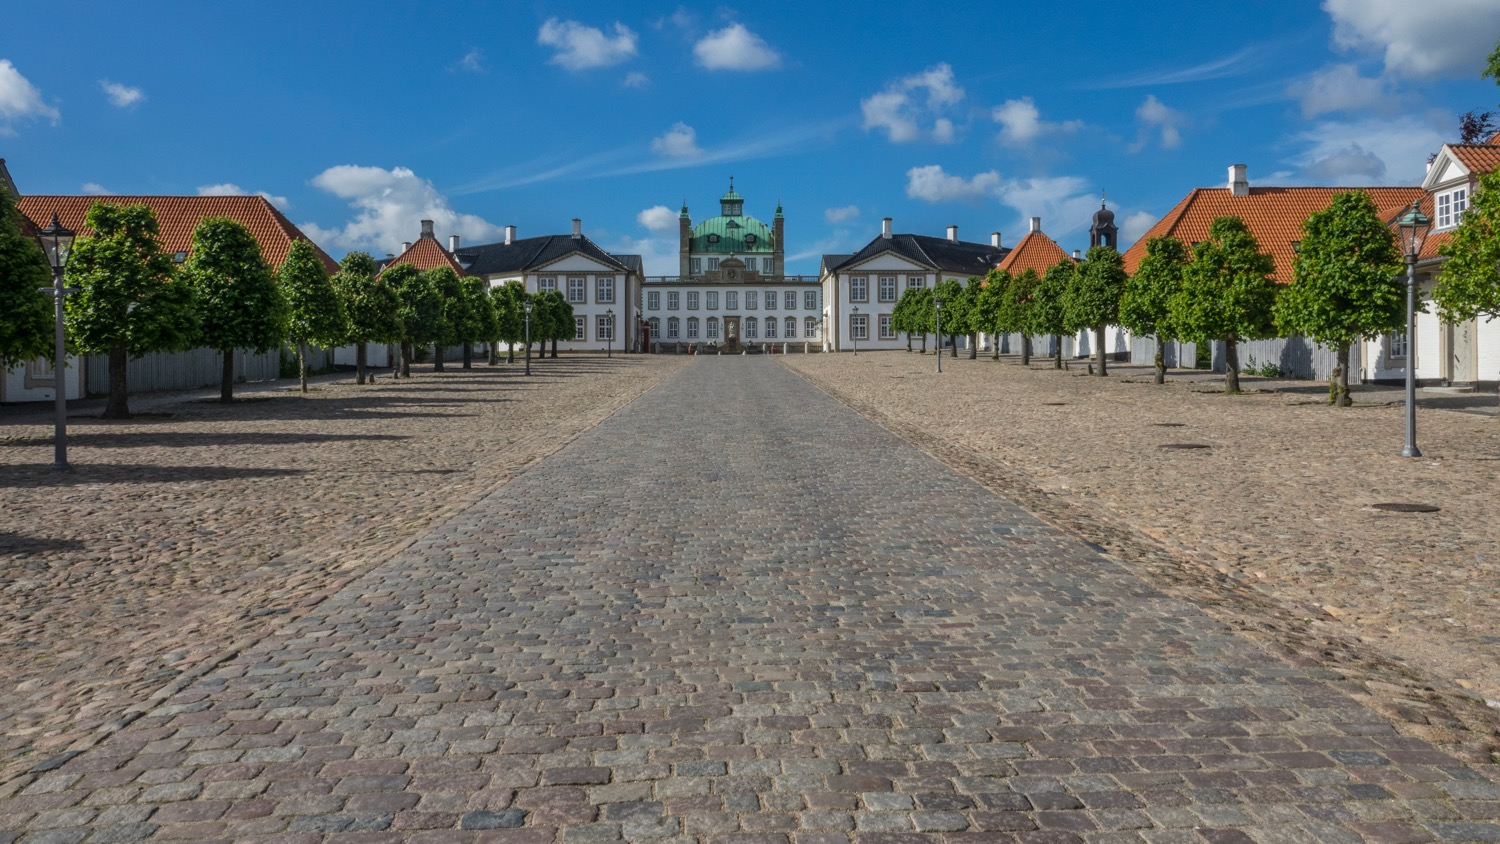 The long driveway up to Fredensborg Palace. The gates were open as the Royal Family was away.